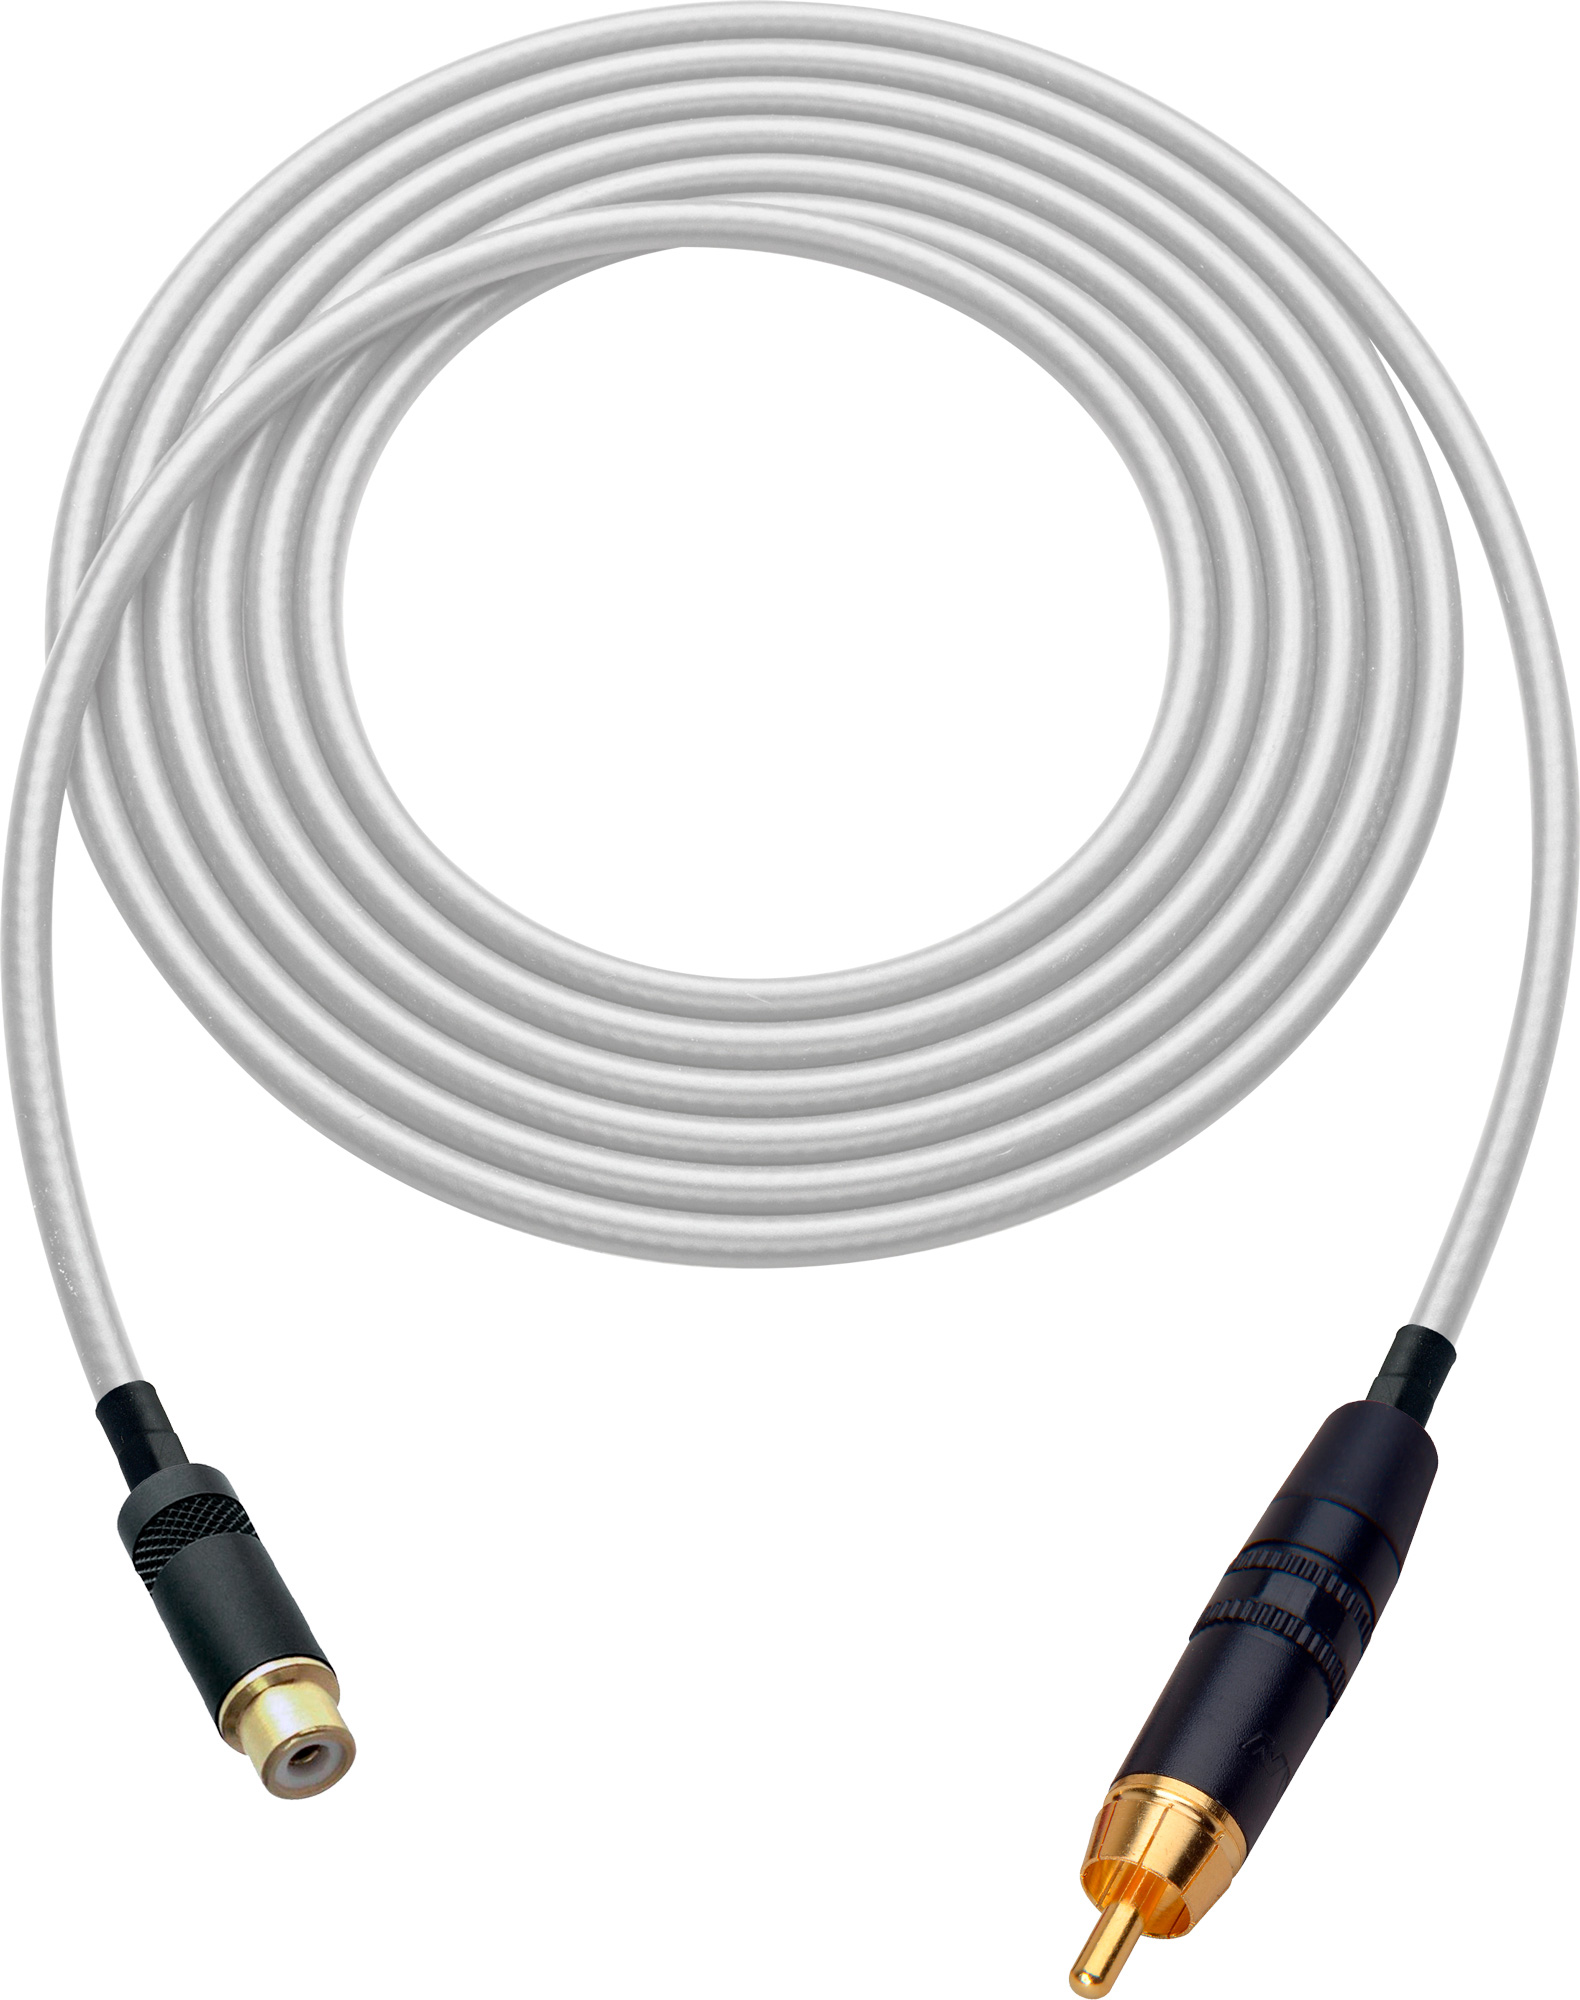 Laird HDAV-EXT-10-WE Belden 1505A RCA M to F Extension Cable For Audio or HD Video - 10 Foot White